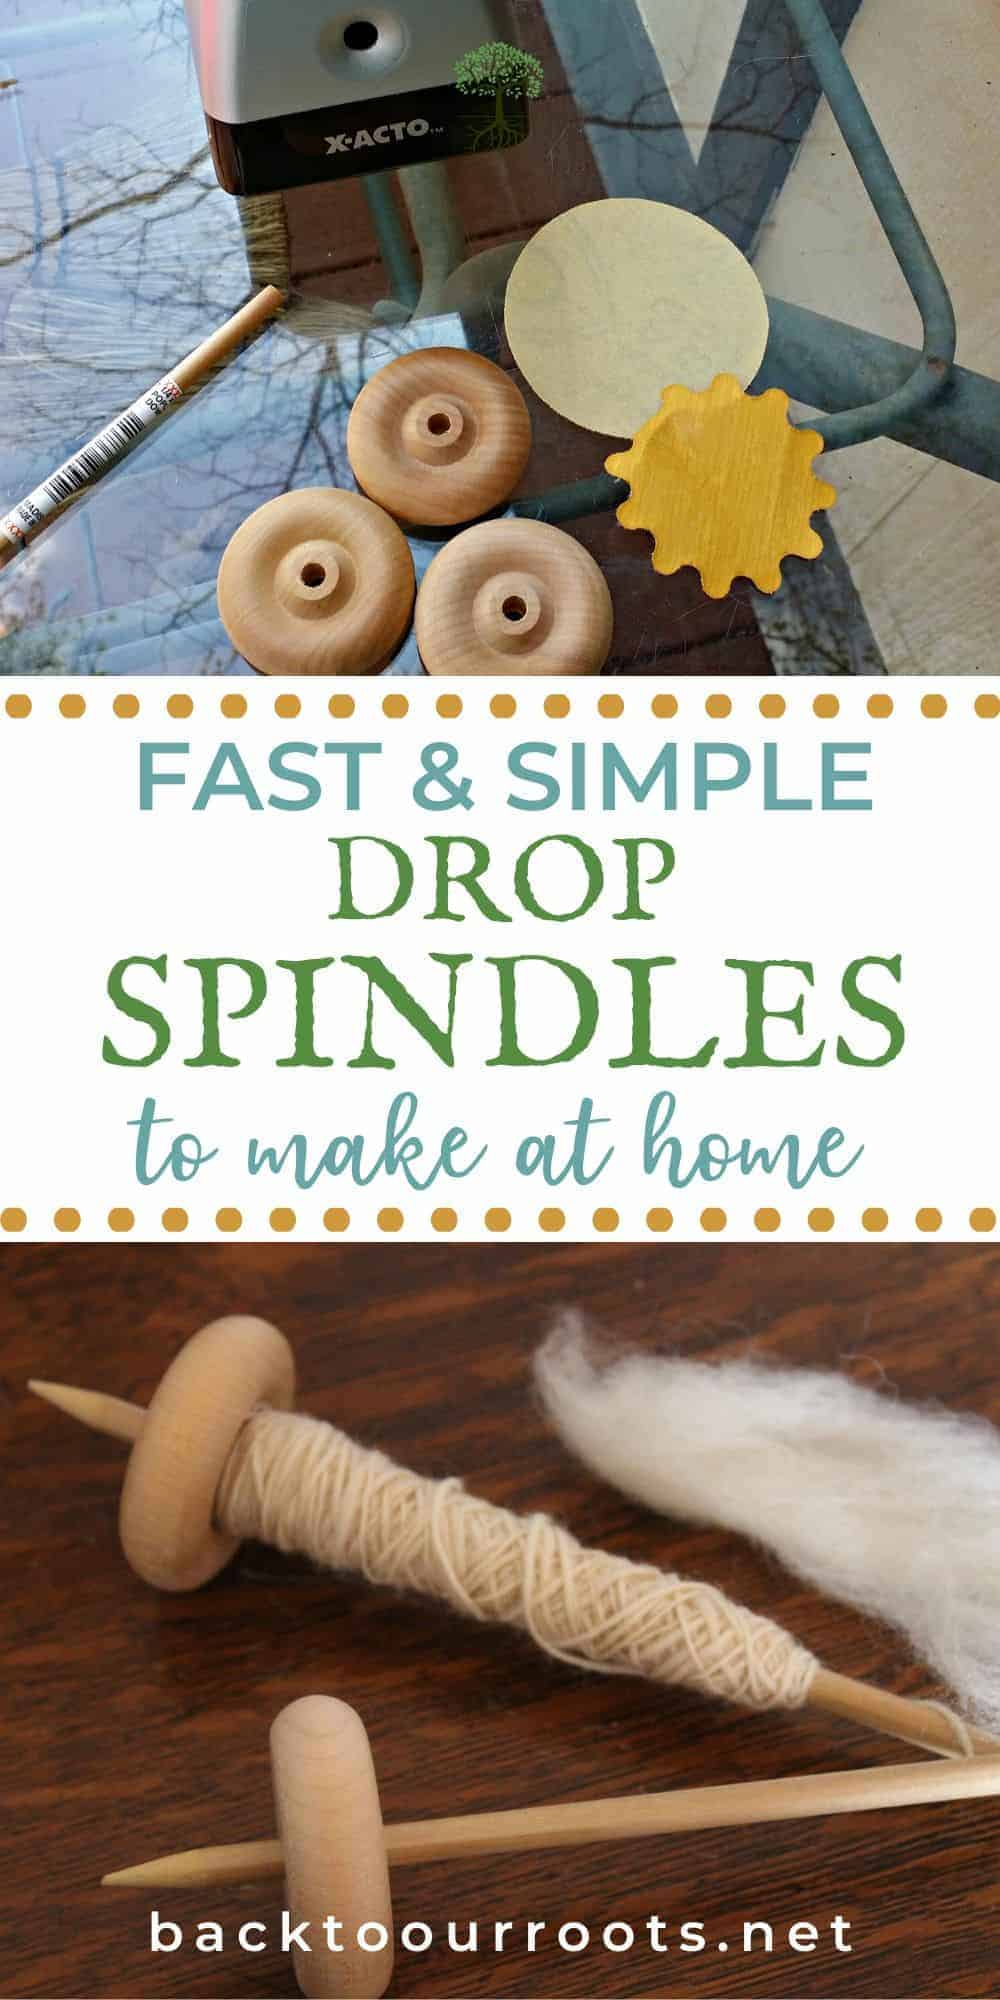 Supplies needed to make DIY drop spindles